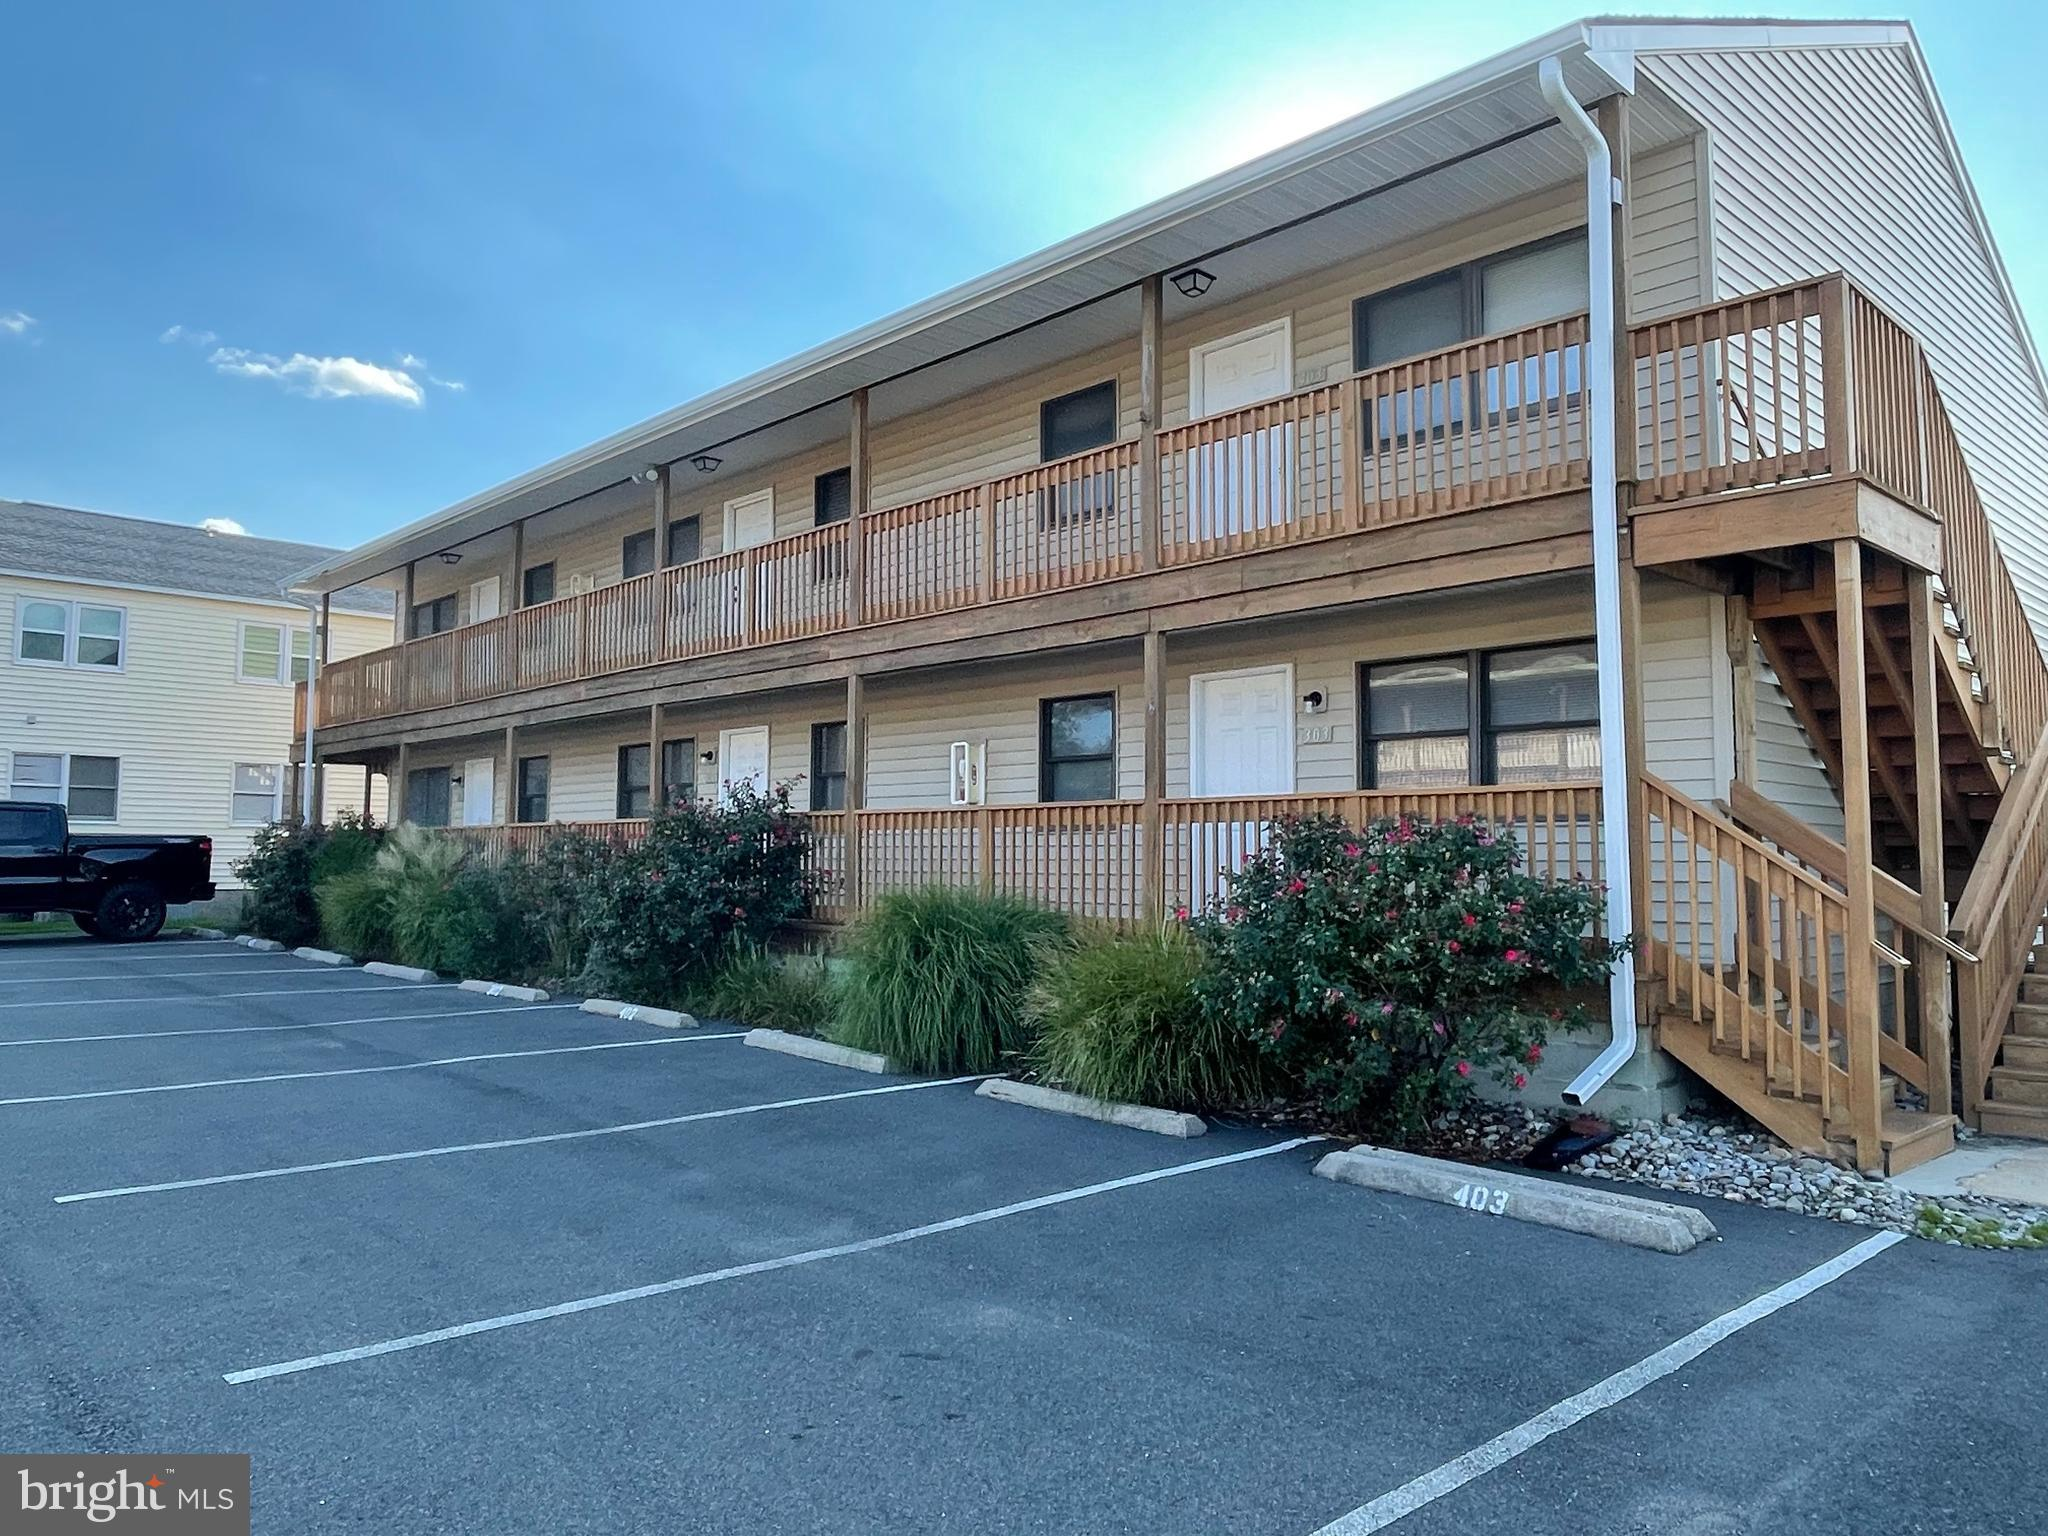 CONTRACT FELL THROUGH - OPPORTUNITY KNOCKS! Terrific first floor condo in desirable Caine Woods neig